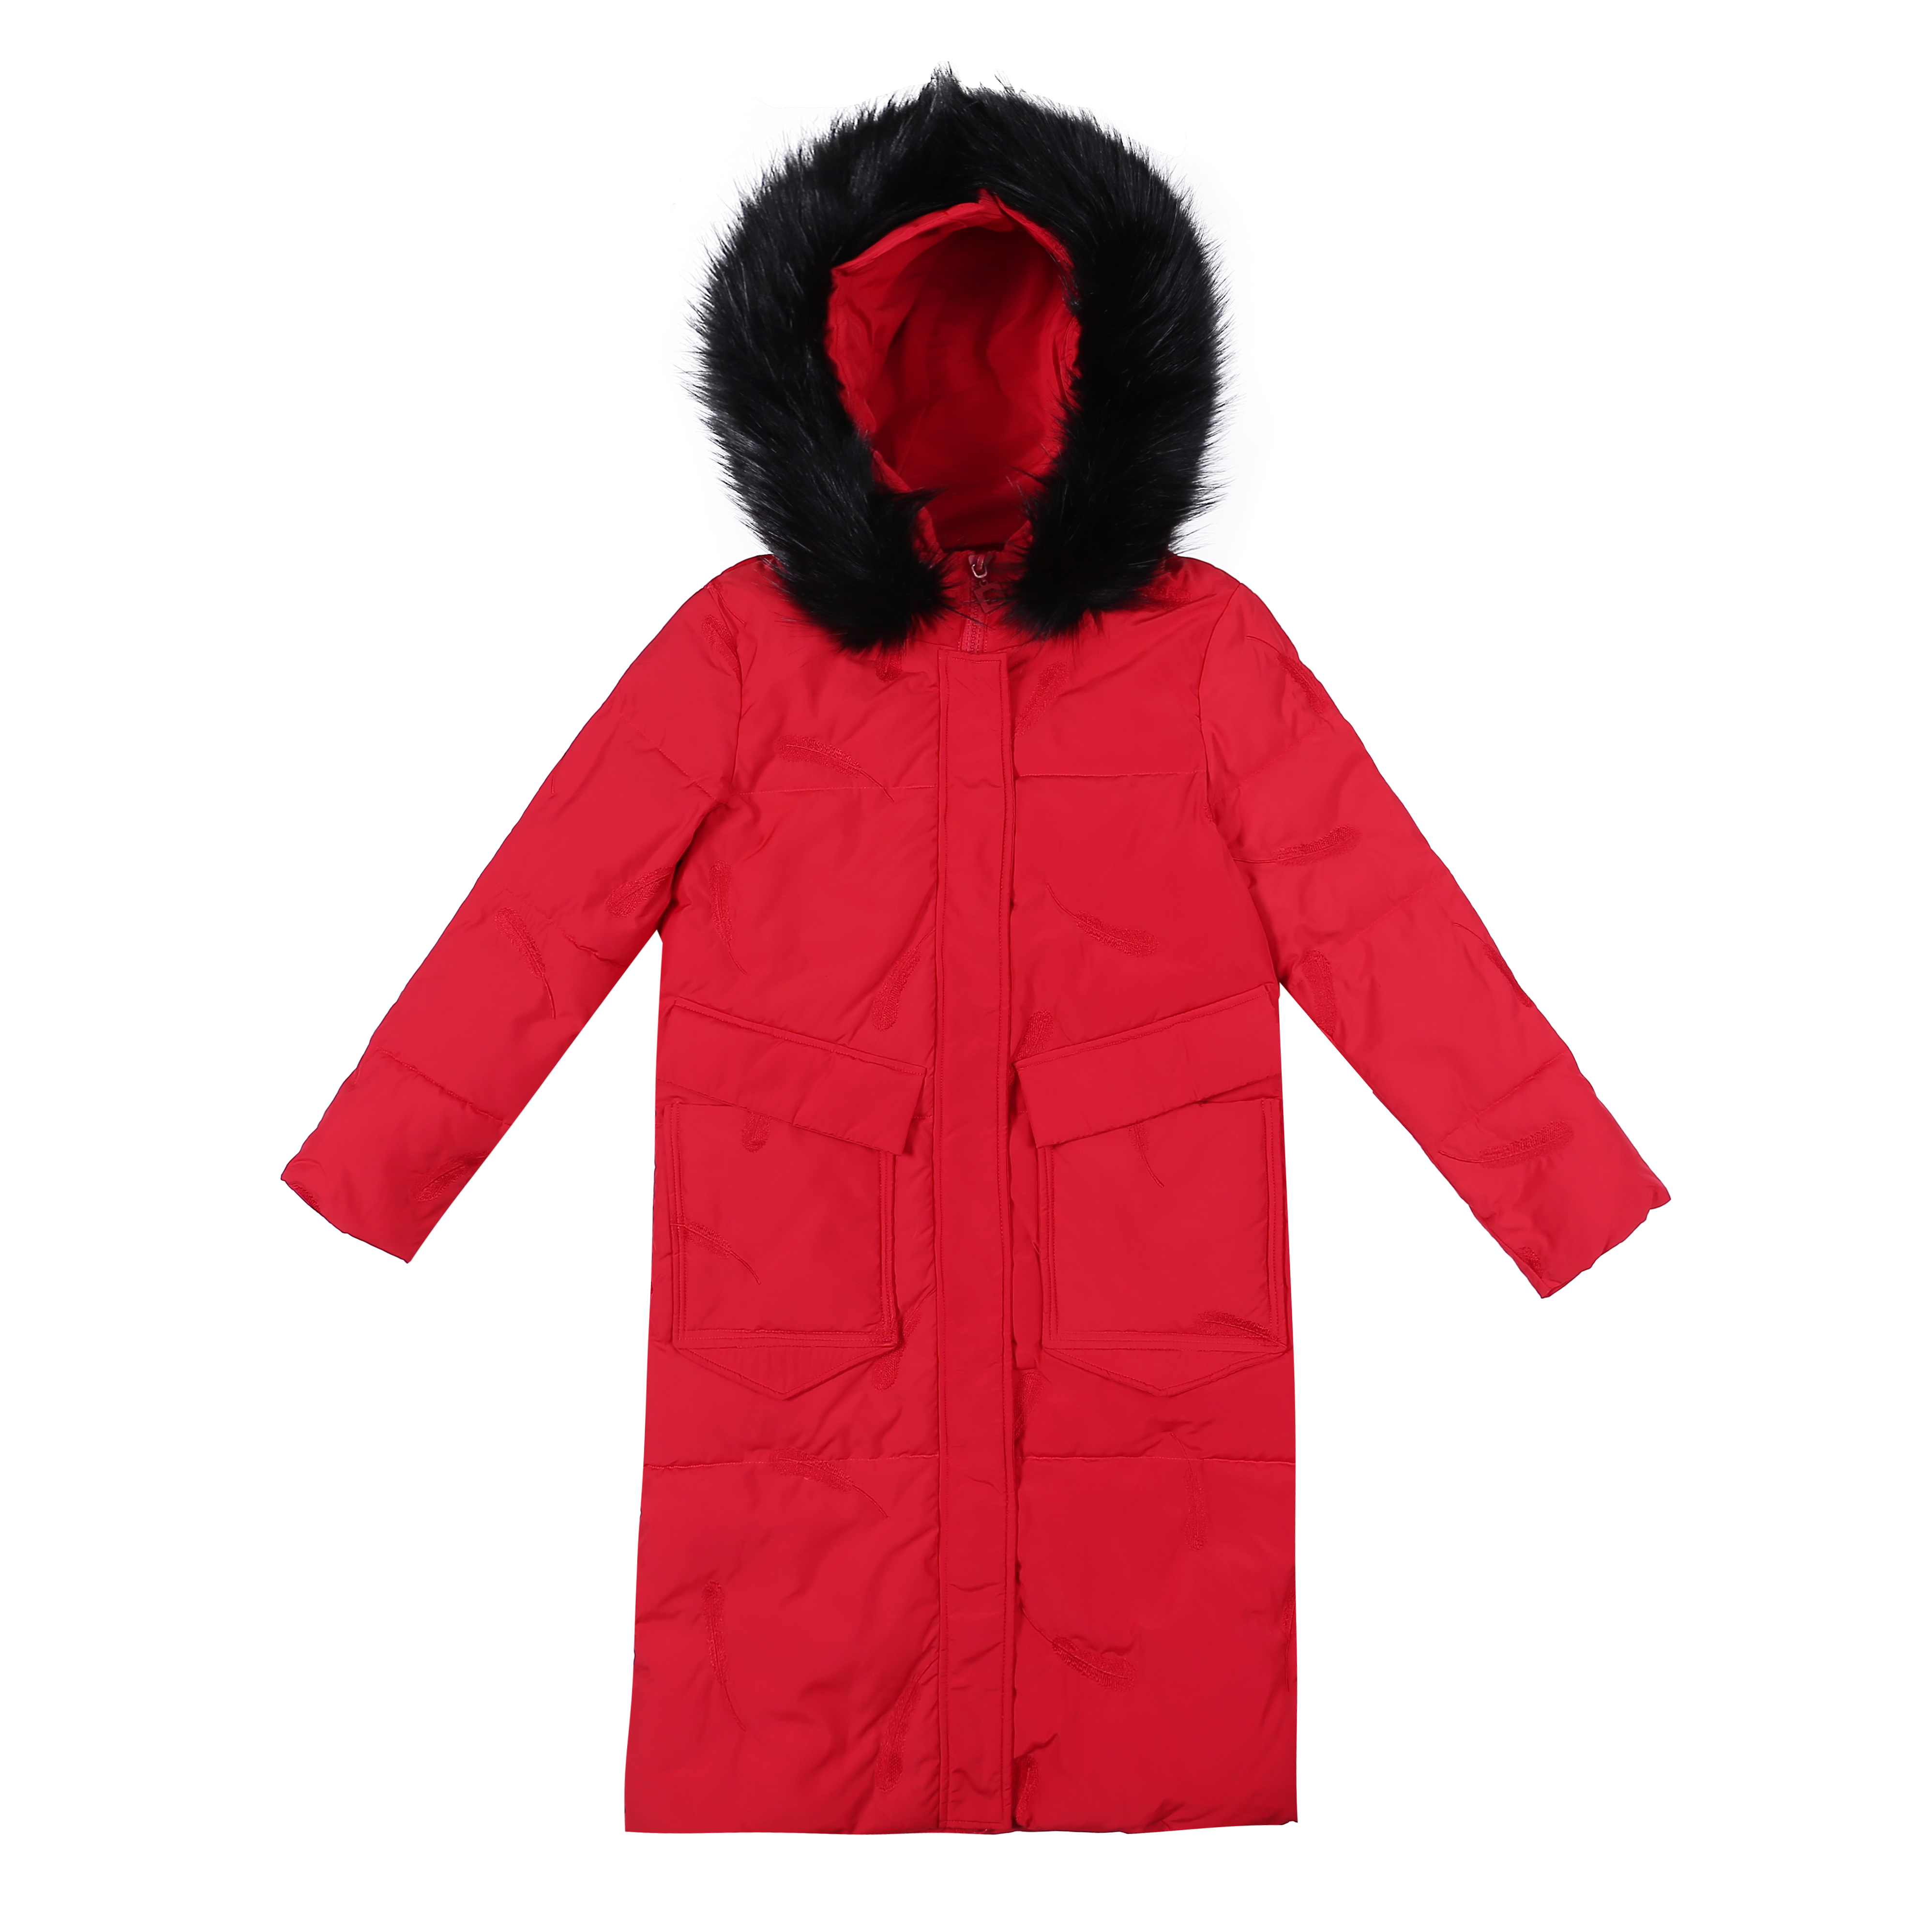 Cotton Leisure New Fashion Cotton-padded Thickening Red Coat Europe Women's Loose Long Section Pink Azure